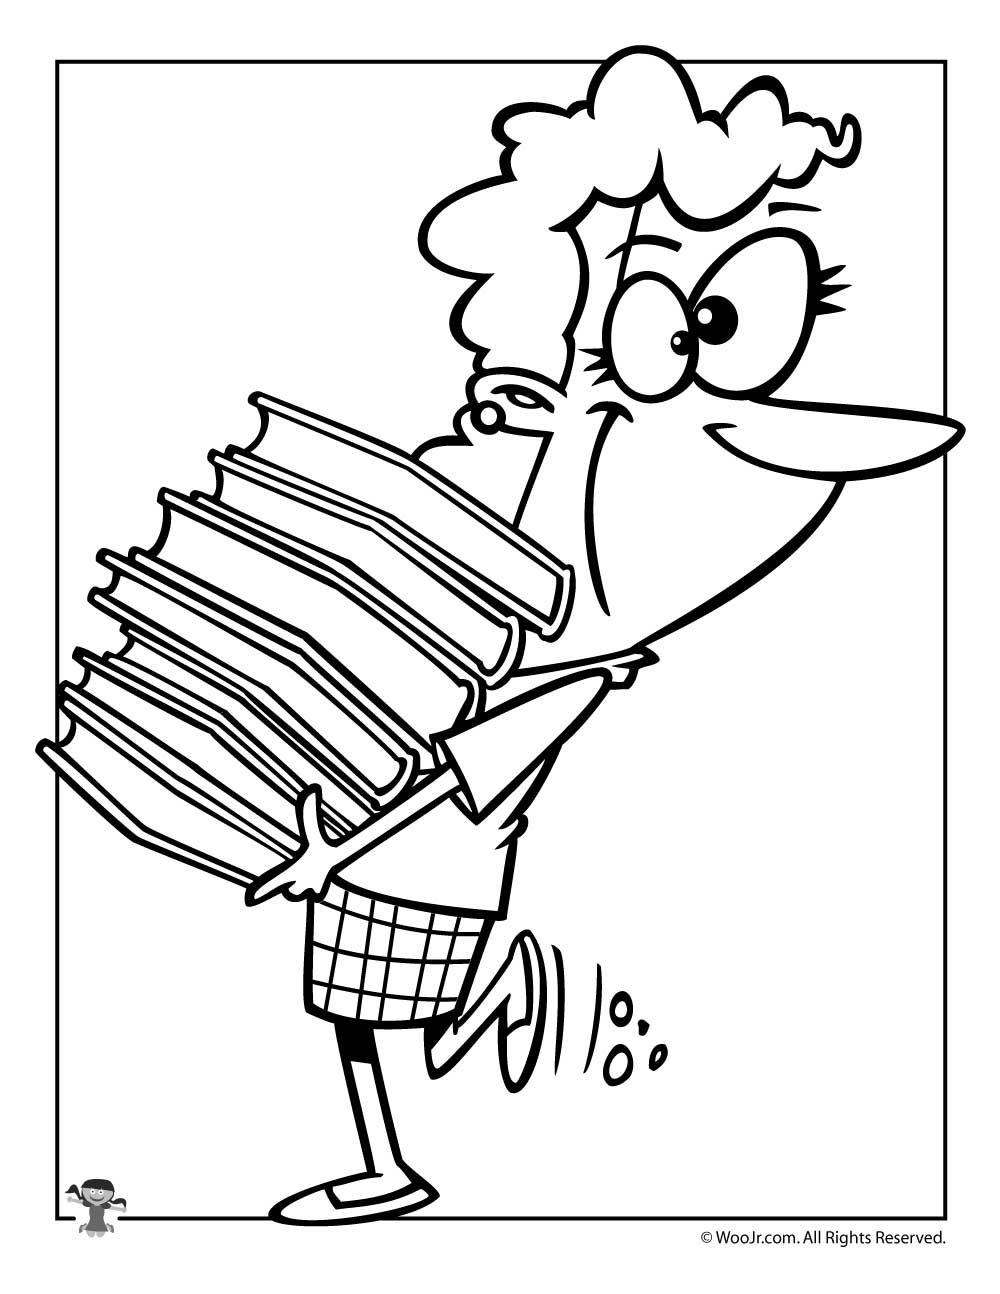 library coloring pages printables - librarian coloring page woo jr kids activities